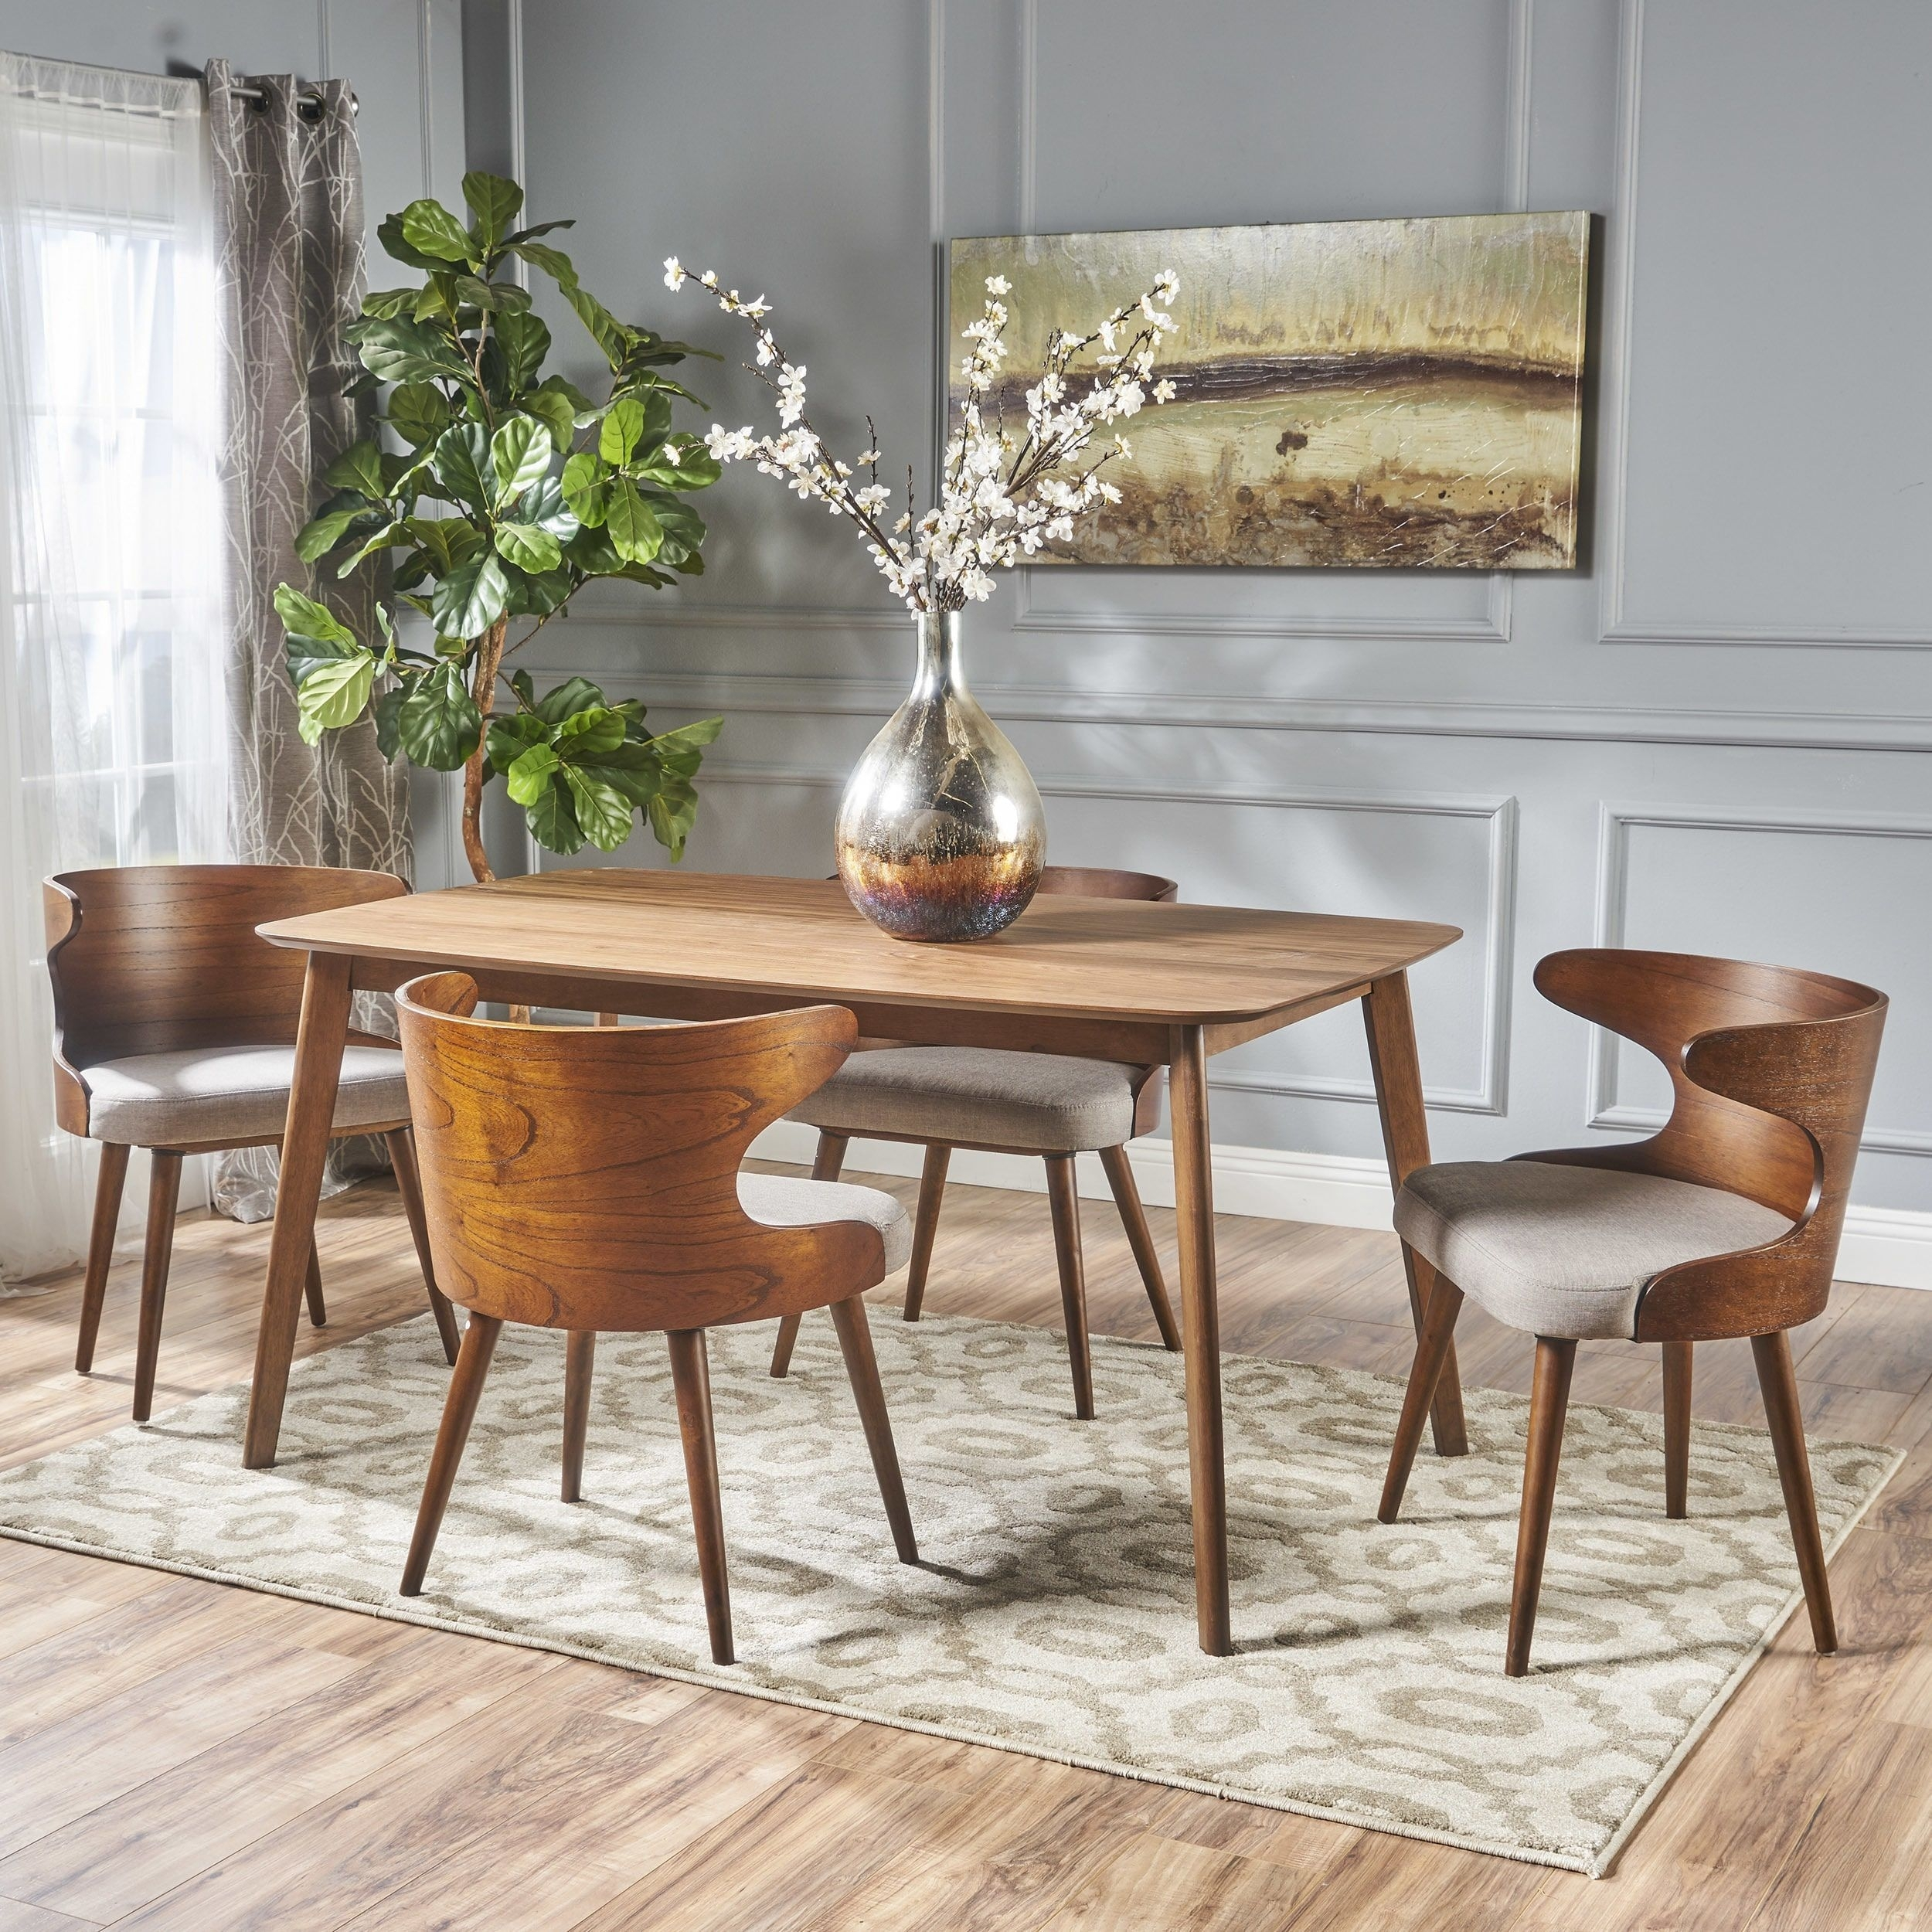 Briella Mid Century 5 Piece Rectangular Wood Dining Set For Current Palazzo 7 Piece Rectangle Dining Sets With Joss Side Chairs (View 11 of 20)